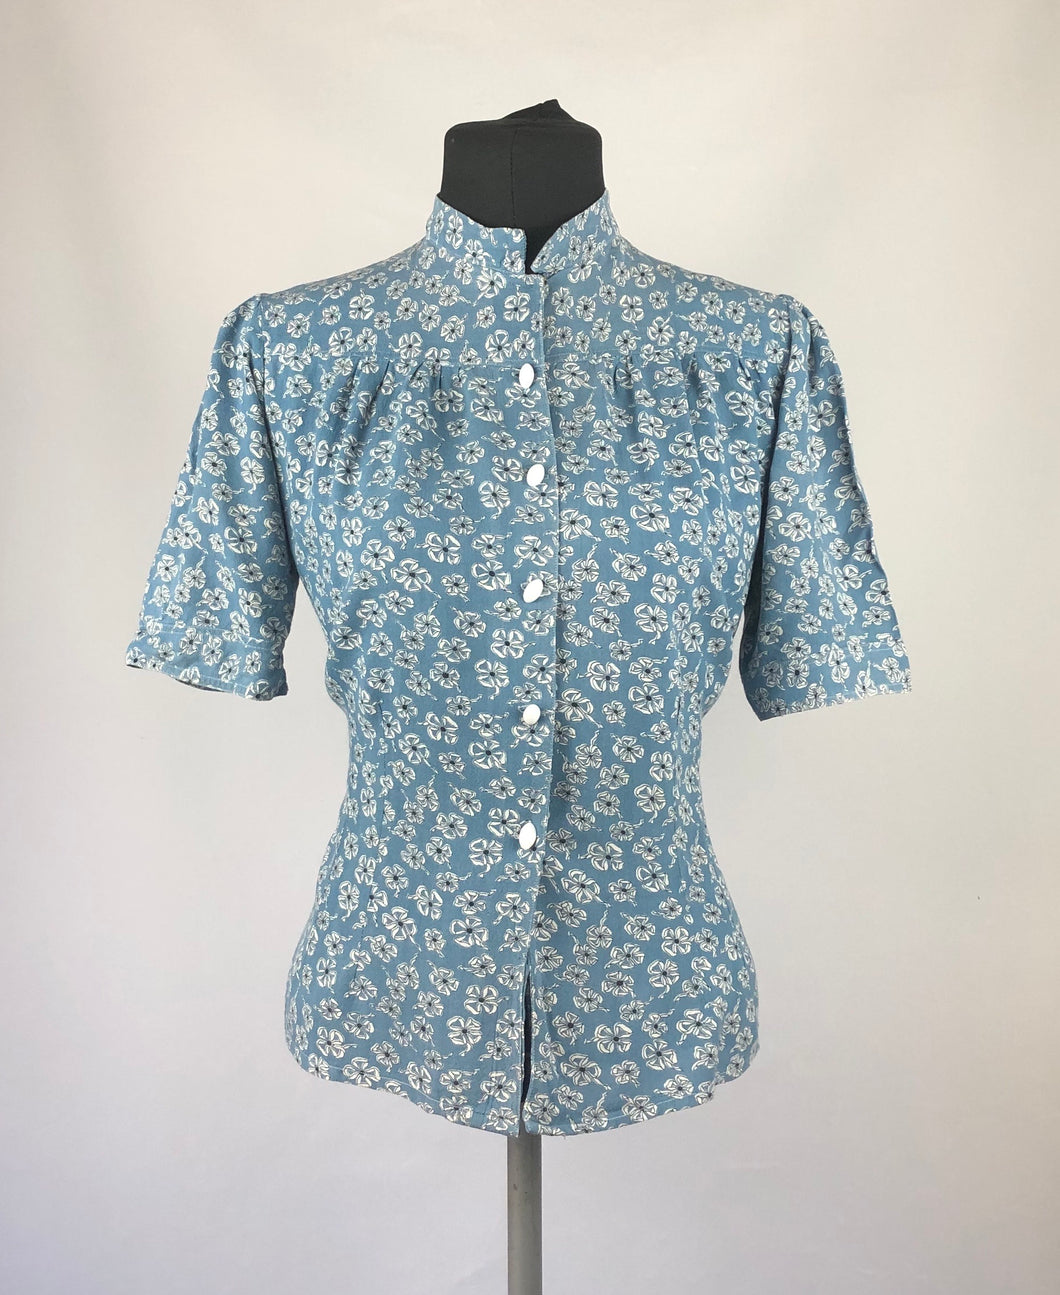 1940s Blue, White and Black Novelty Print Ribbons and Clover Blouse - B36